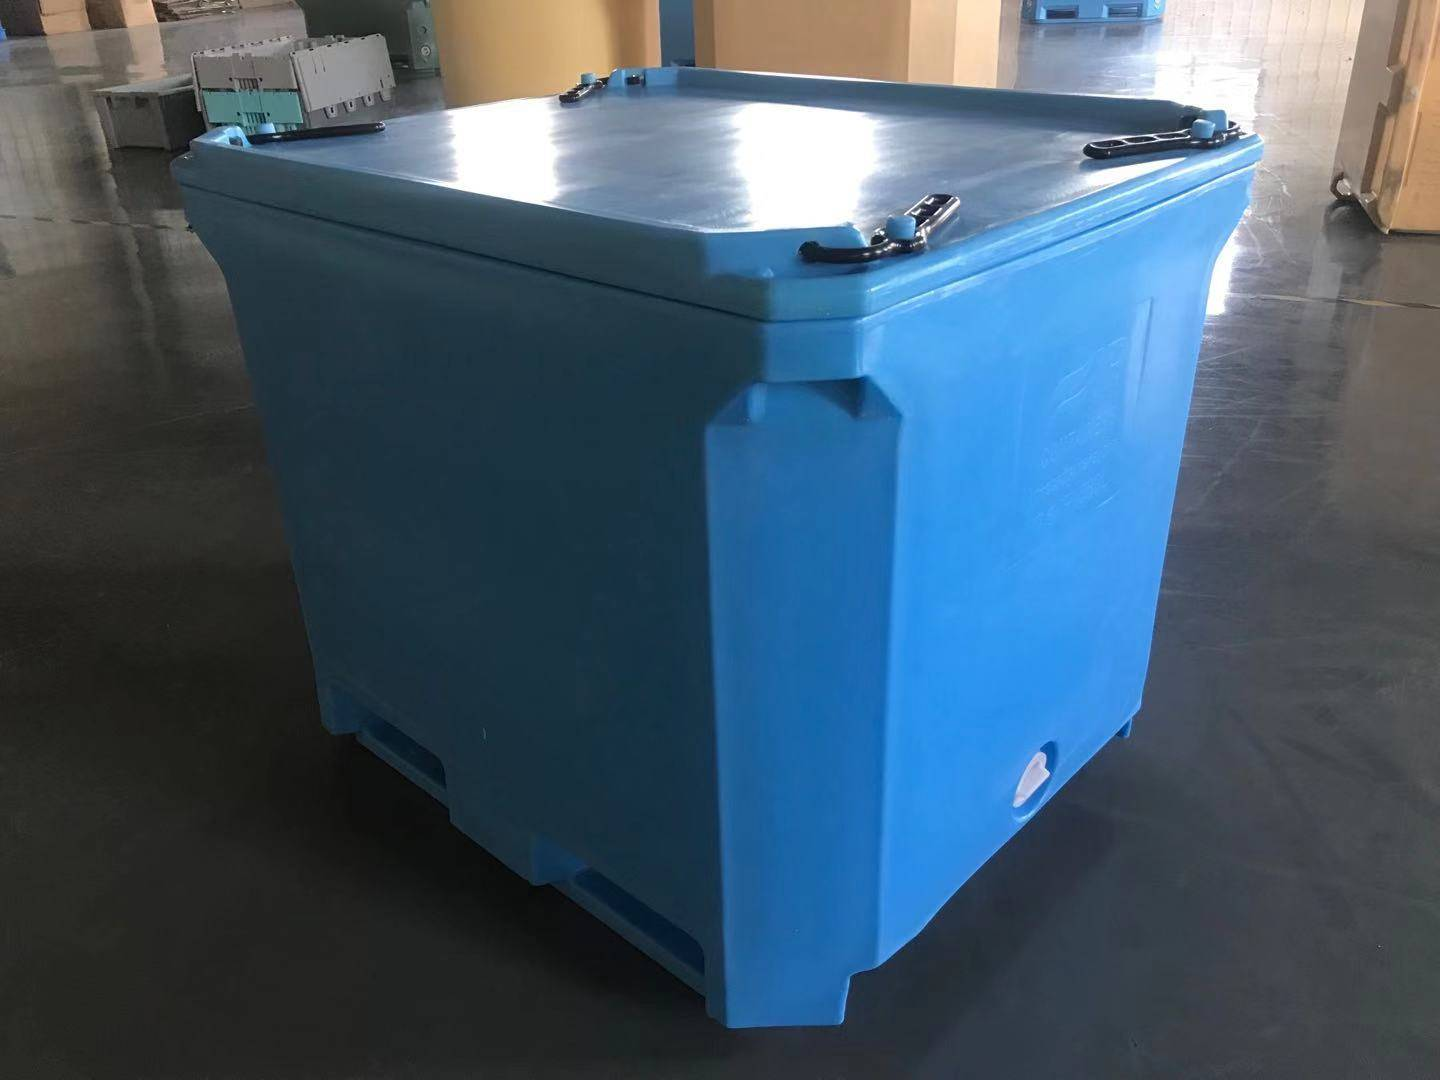 2018 wholesale price Beach Ice Cooler Box - [Copy] 380L Insulated fish bin, ice box – Wanma Rotomold